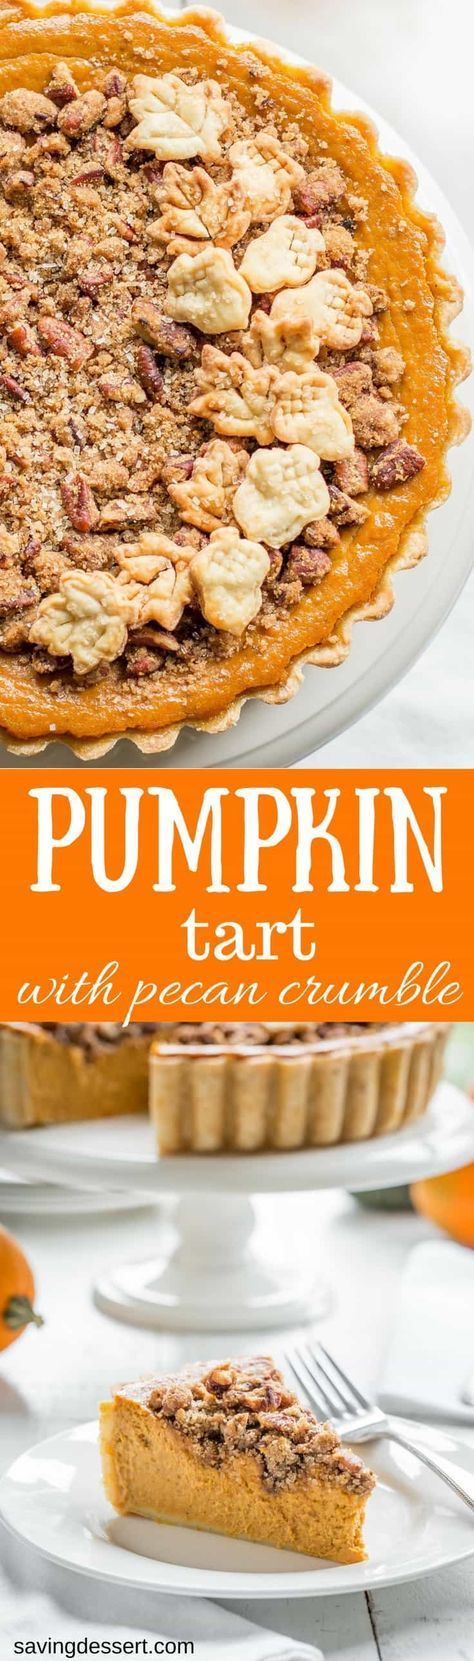 Pumpkin Tart with Pecan Crumble ~ a surprisingly unique and delicious tart with a cream cheese pumpkin base and a sweet, crunchy crumble top loaded with toasted pecans. www.savingdessert.com #pumpkin #pumpkintart #pumpkinpie #Thanksgivingdessert #thanksgiving #sponsored #nielsenmassey #ad